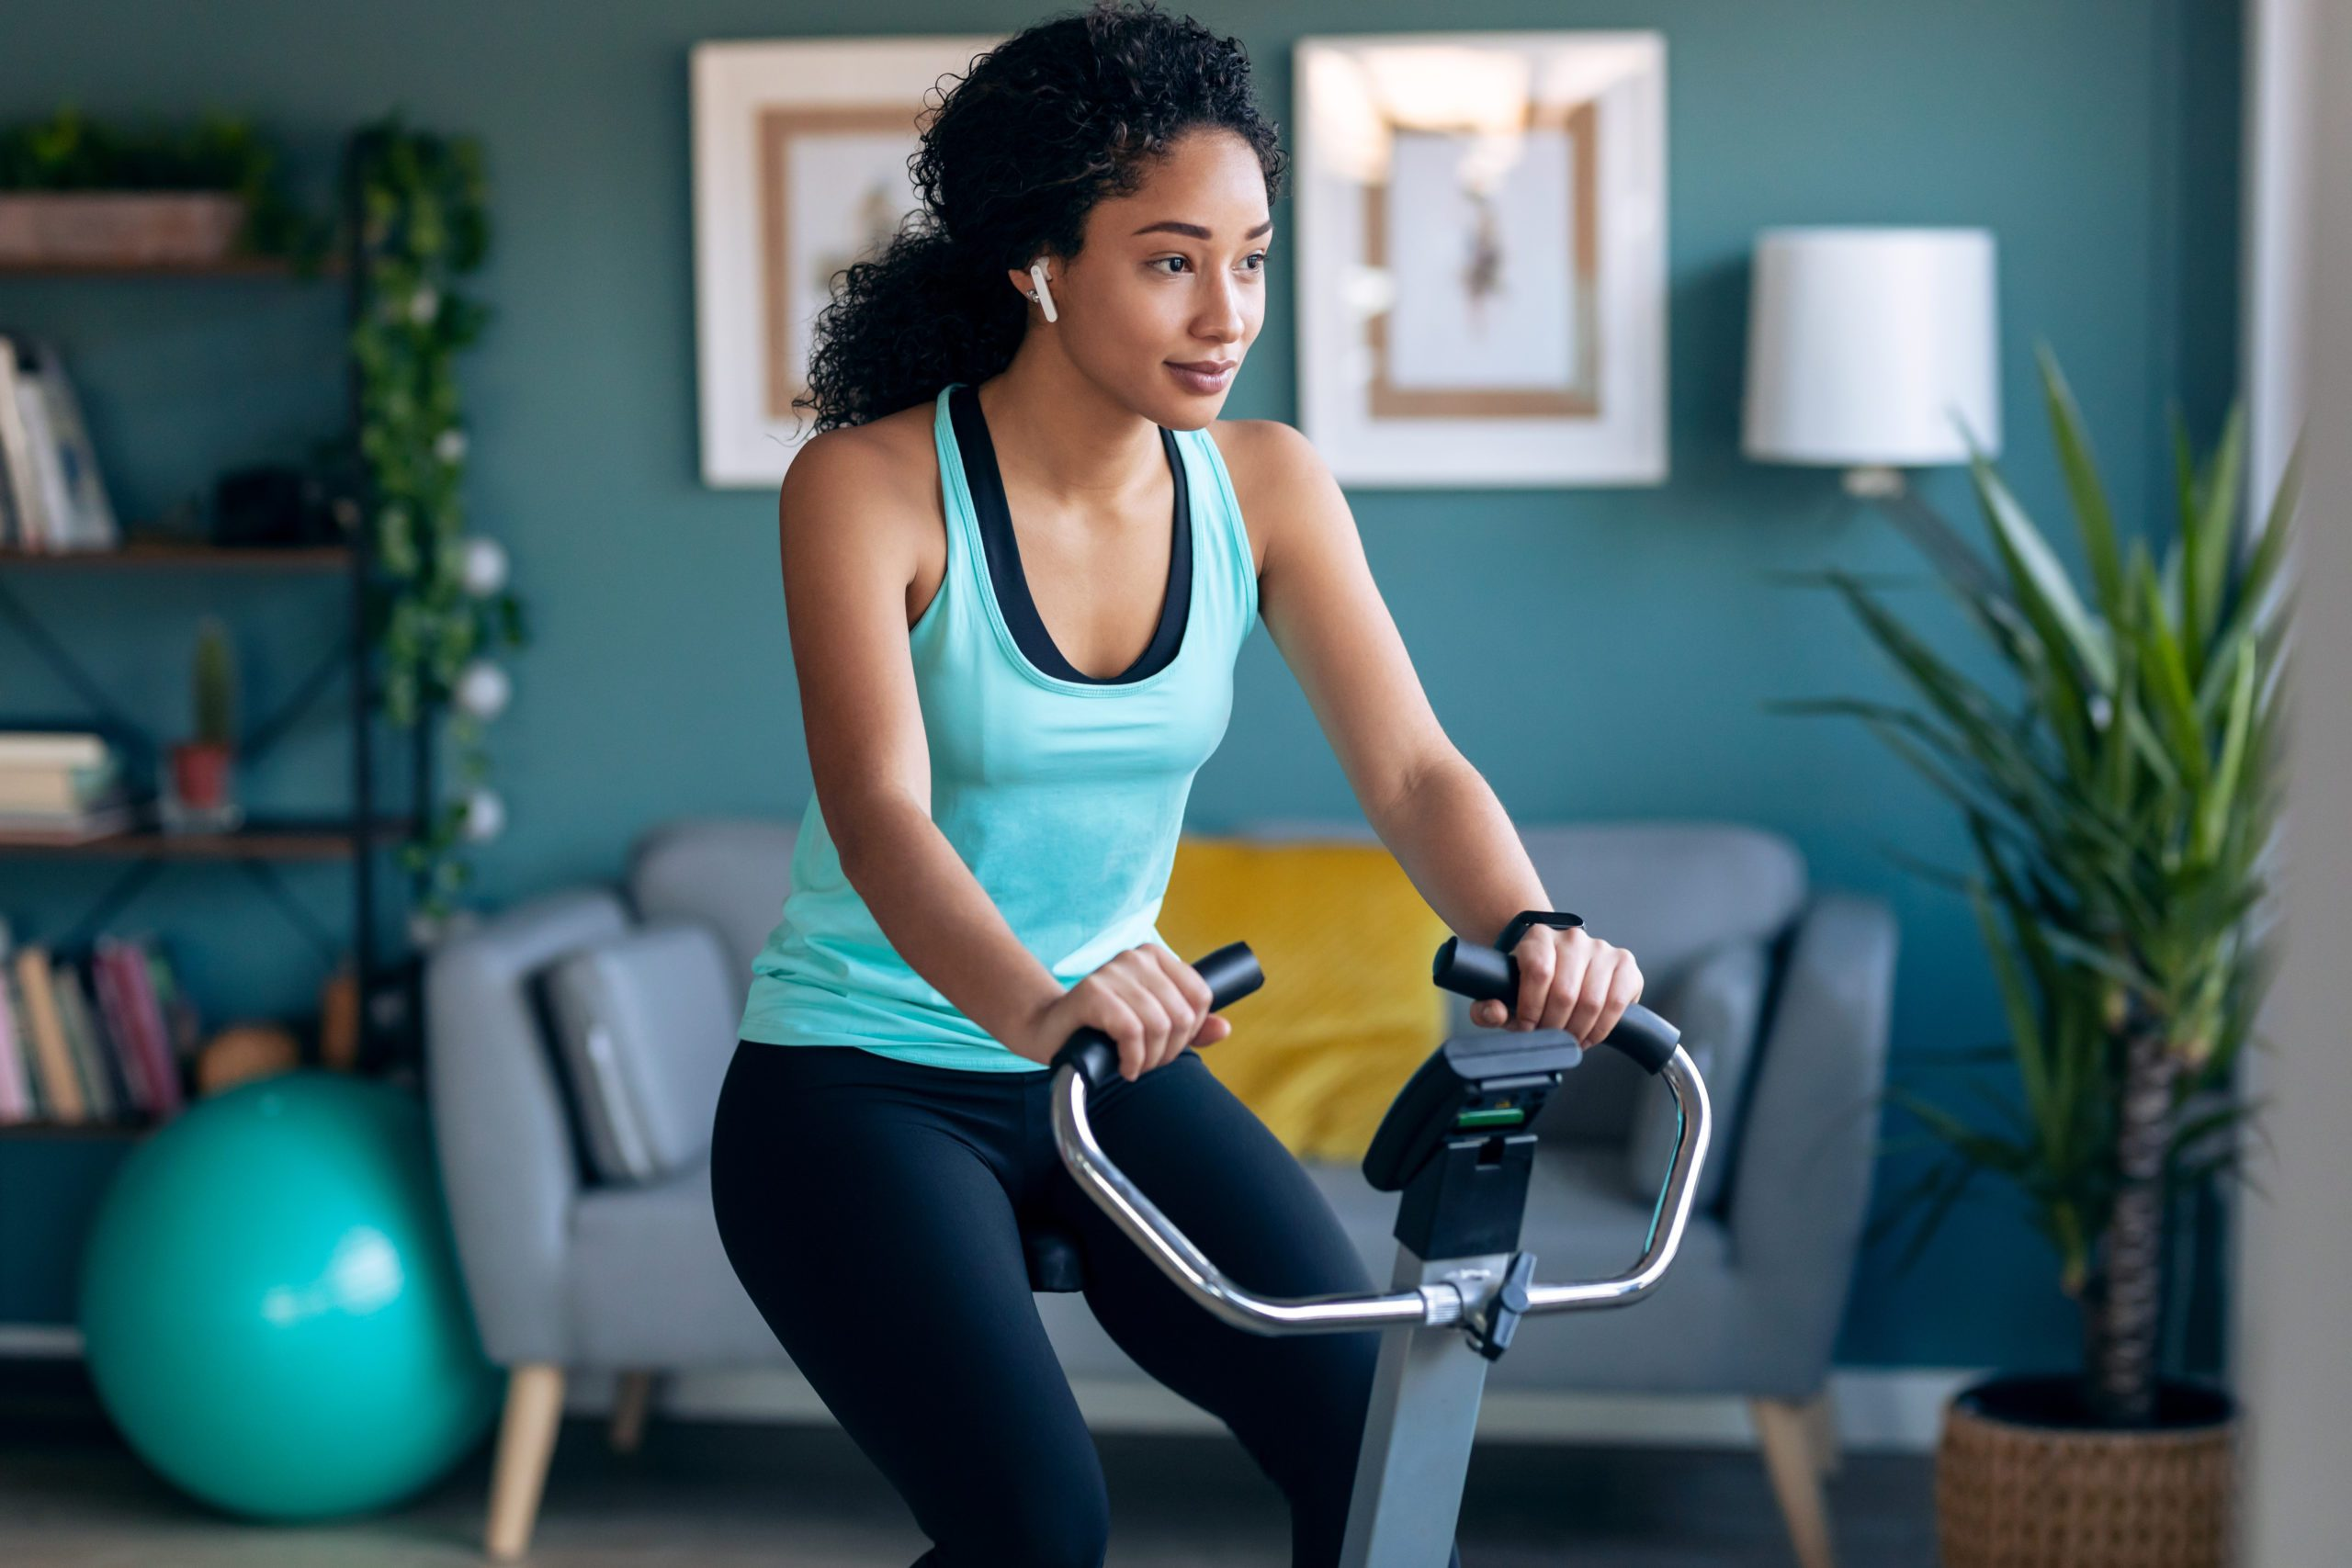 Shot,of,sporty,african,young,woman,exercising,on,smart,stationary